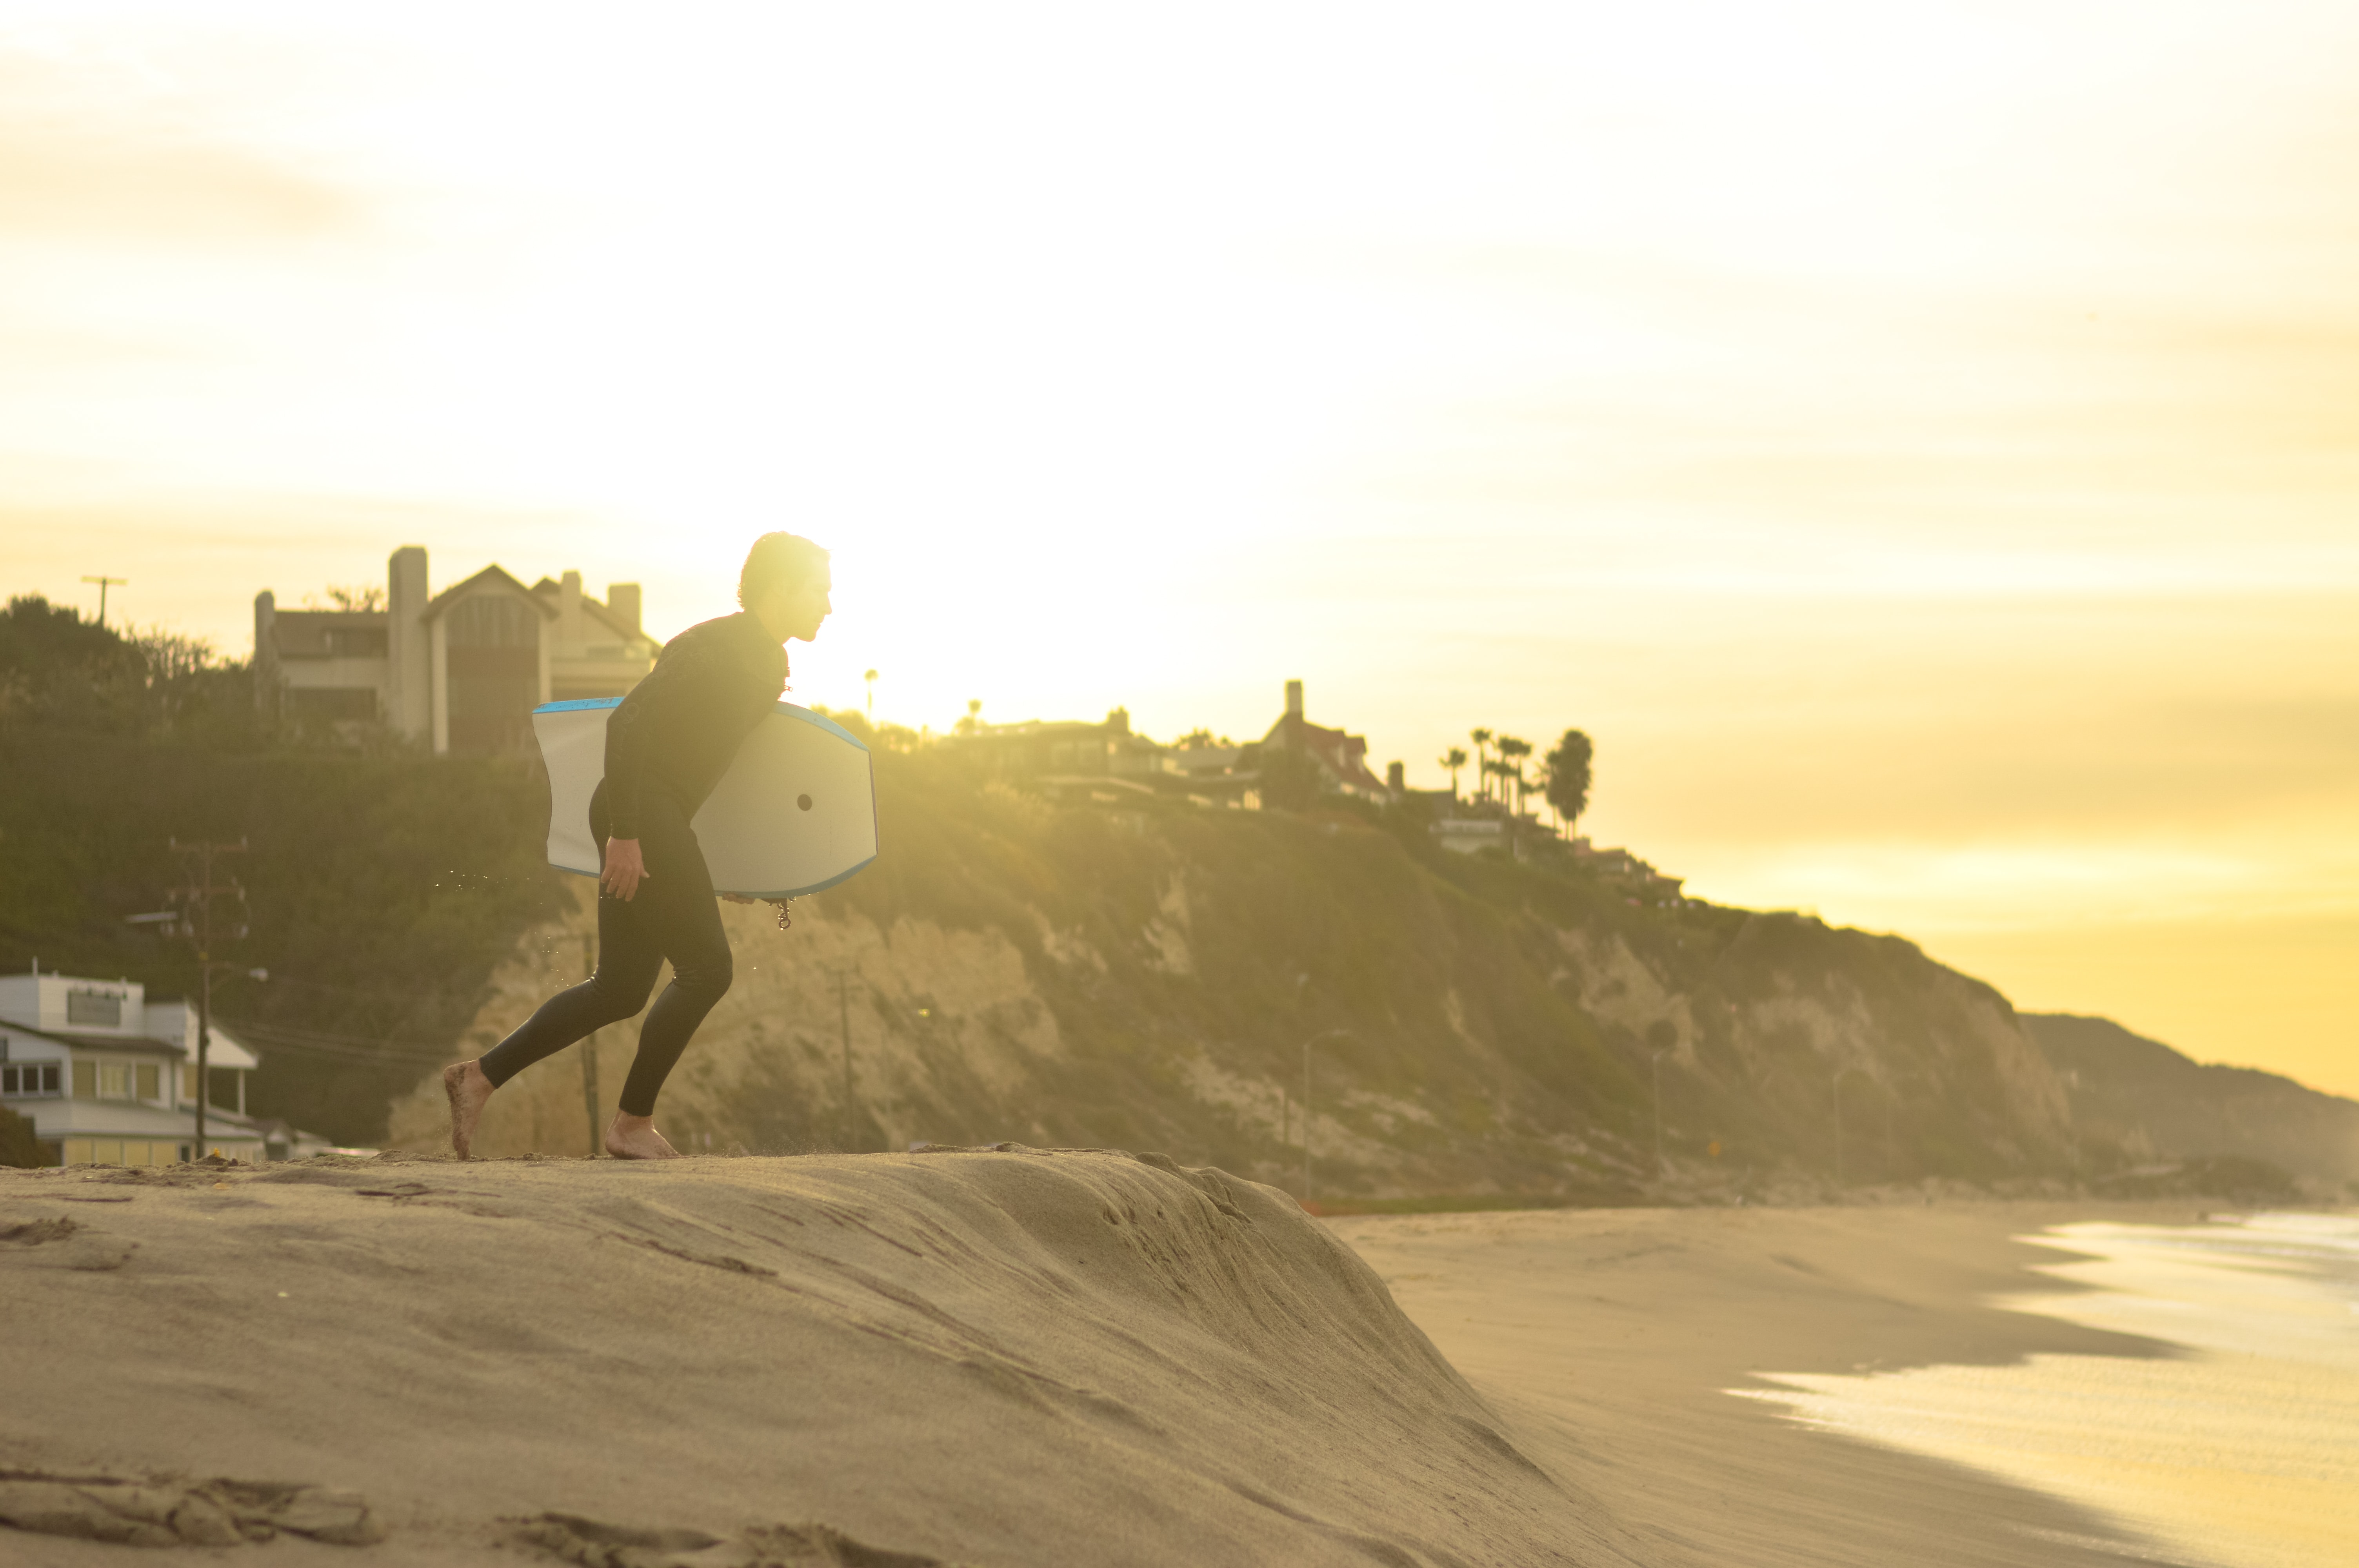 A surfer in a wetsuit, with his surfboard under his arm, running across the sand towards the sea at sunset